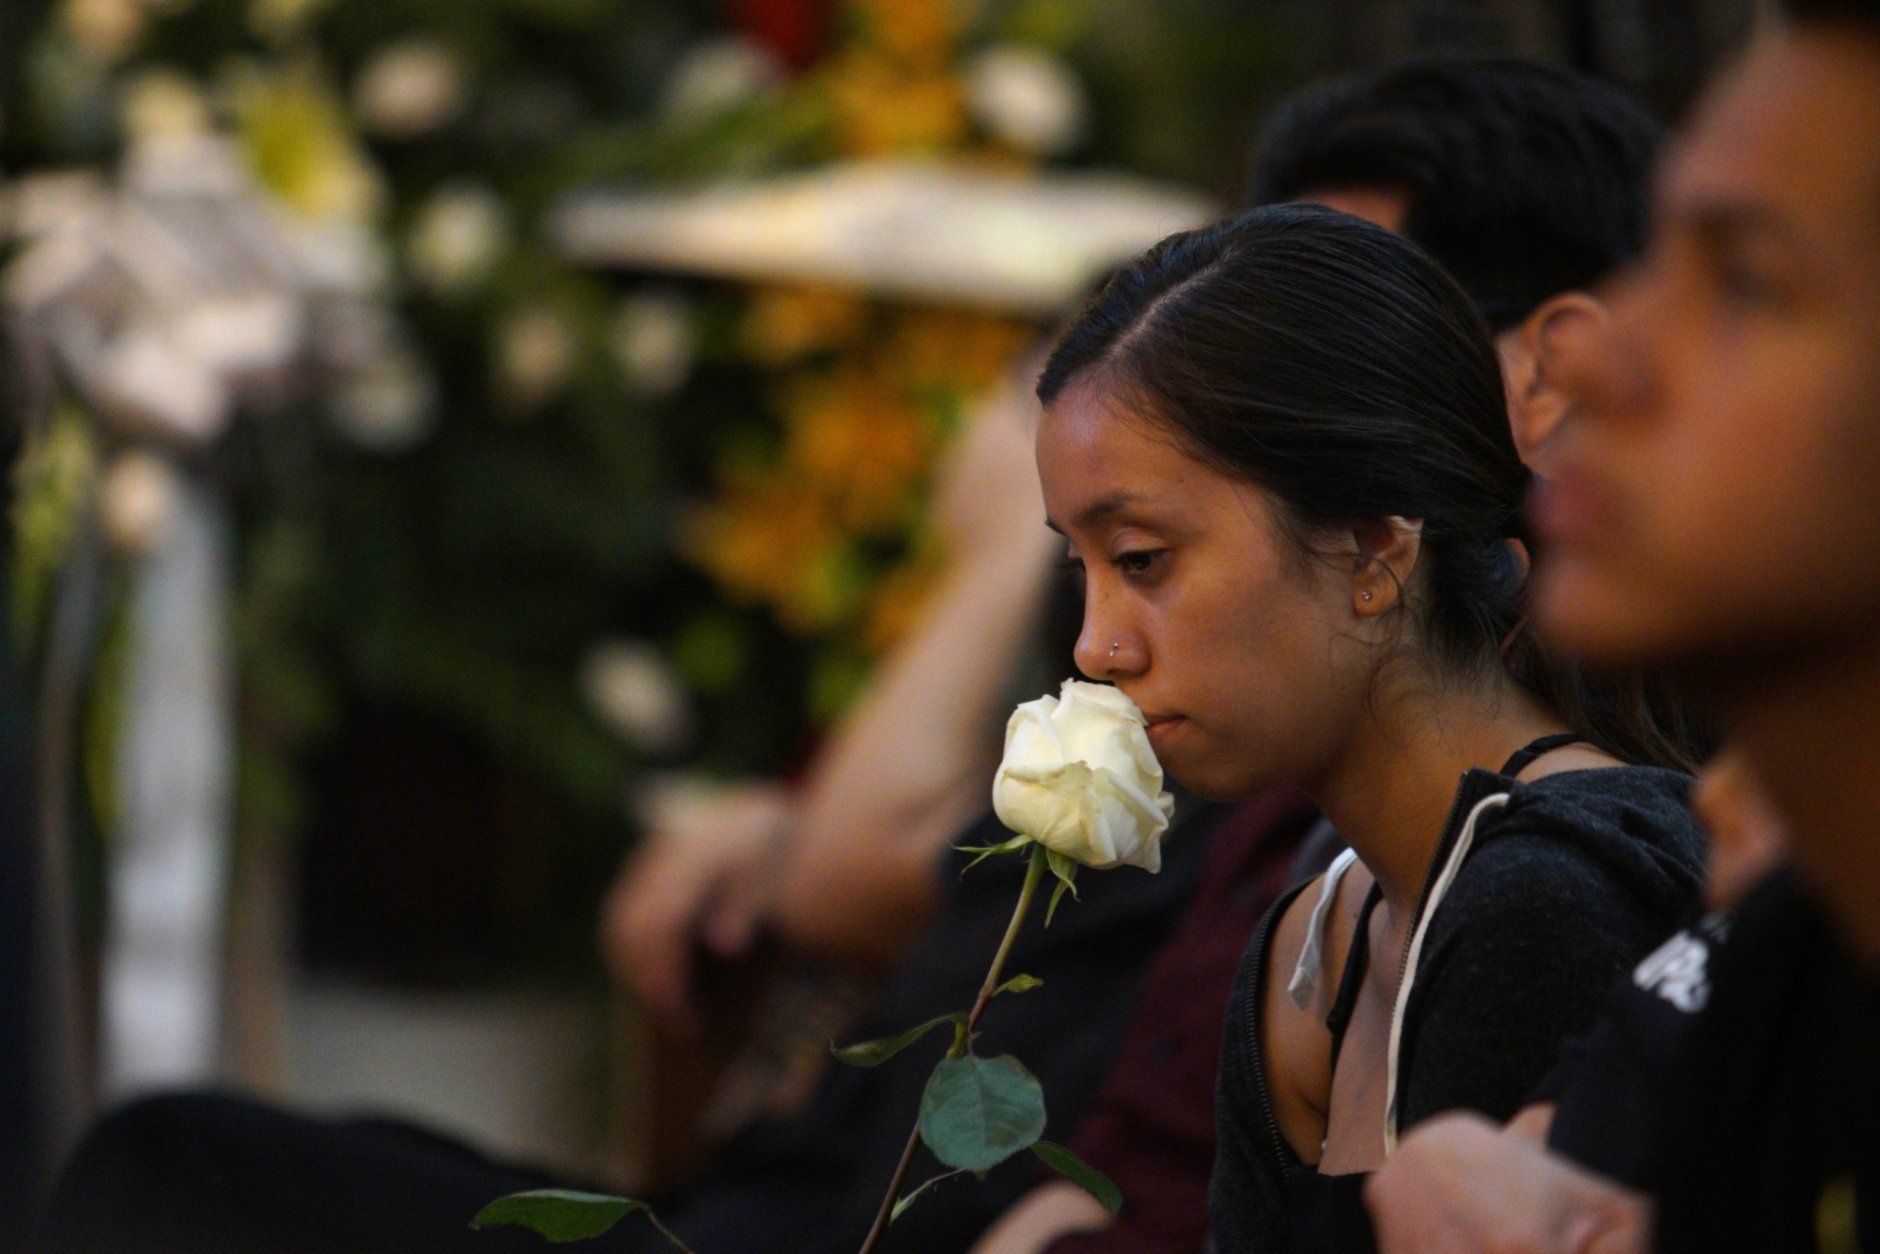 People gather at La Paz Faith Memorial & Spiritual Center, to offer condolences to the family of Margie Reckard during her funeral Friday, Aug. 16, 2019, in El Paso, Texas. Reckard was killed during the mass shooting on Aug. 3.(AP Photo/Jorge Salgado)